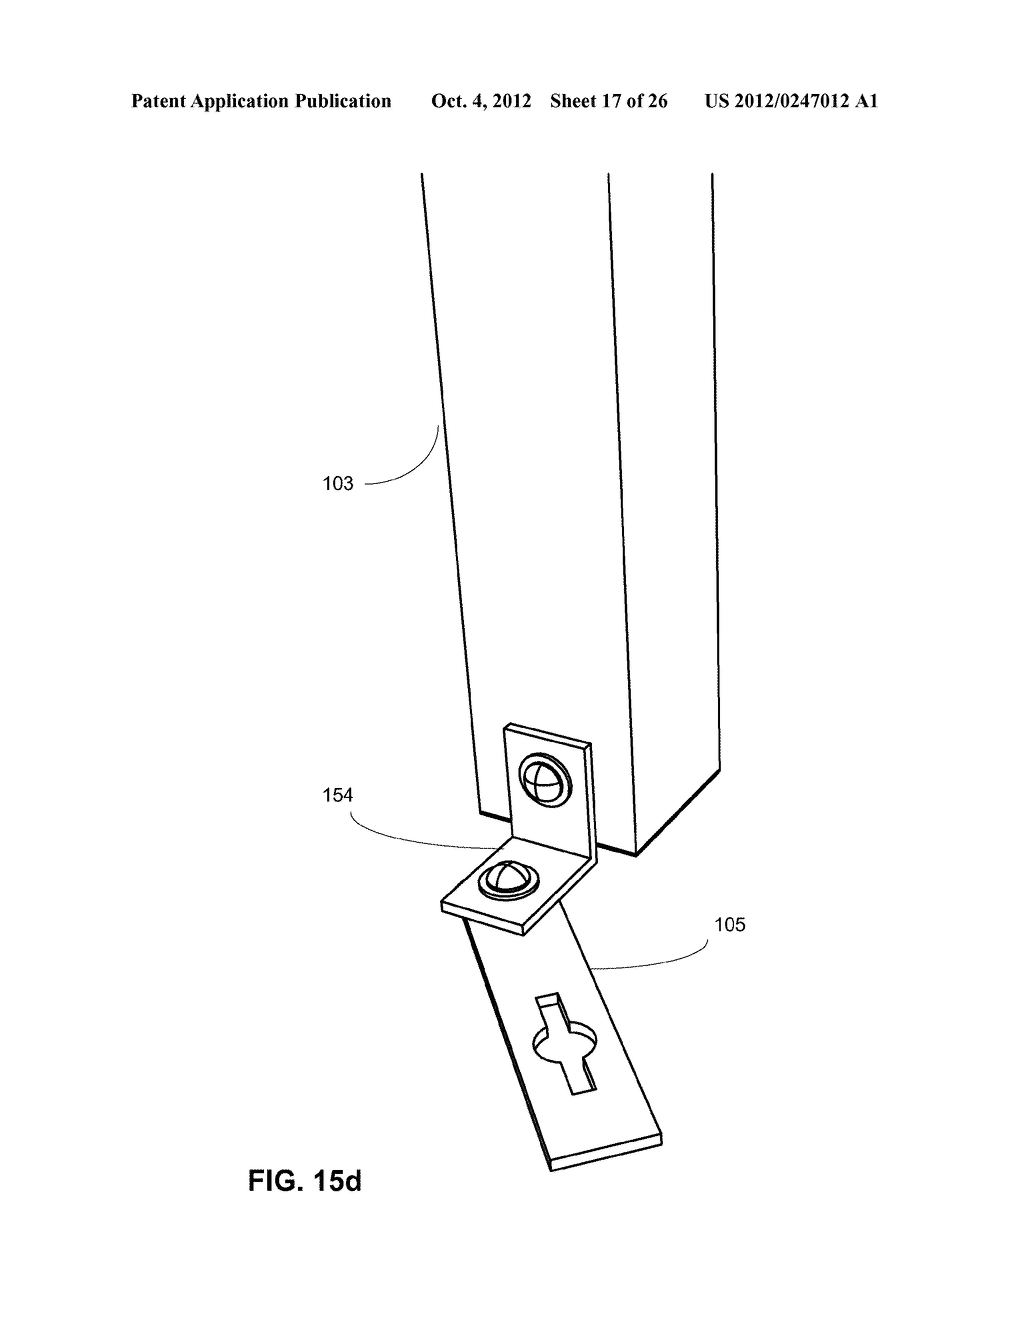 Breakaway Bracket For Use With Modular Tree Guard - diagram, schematic, and image 18